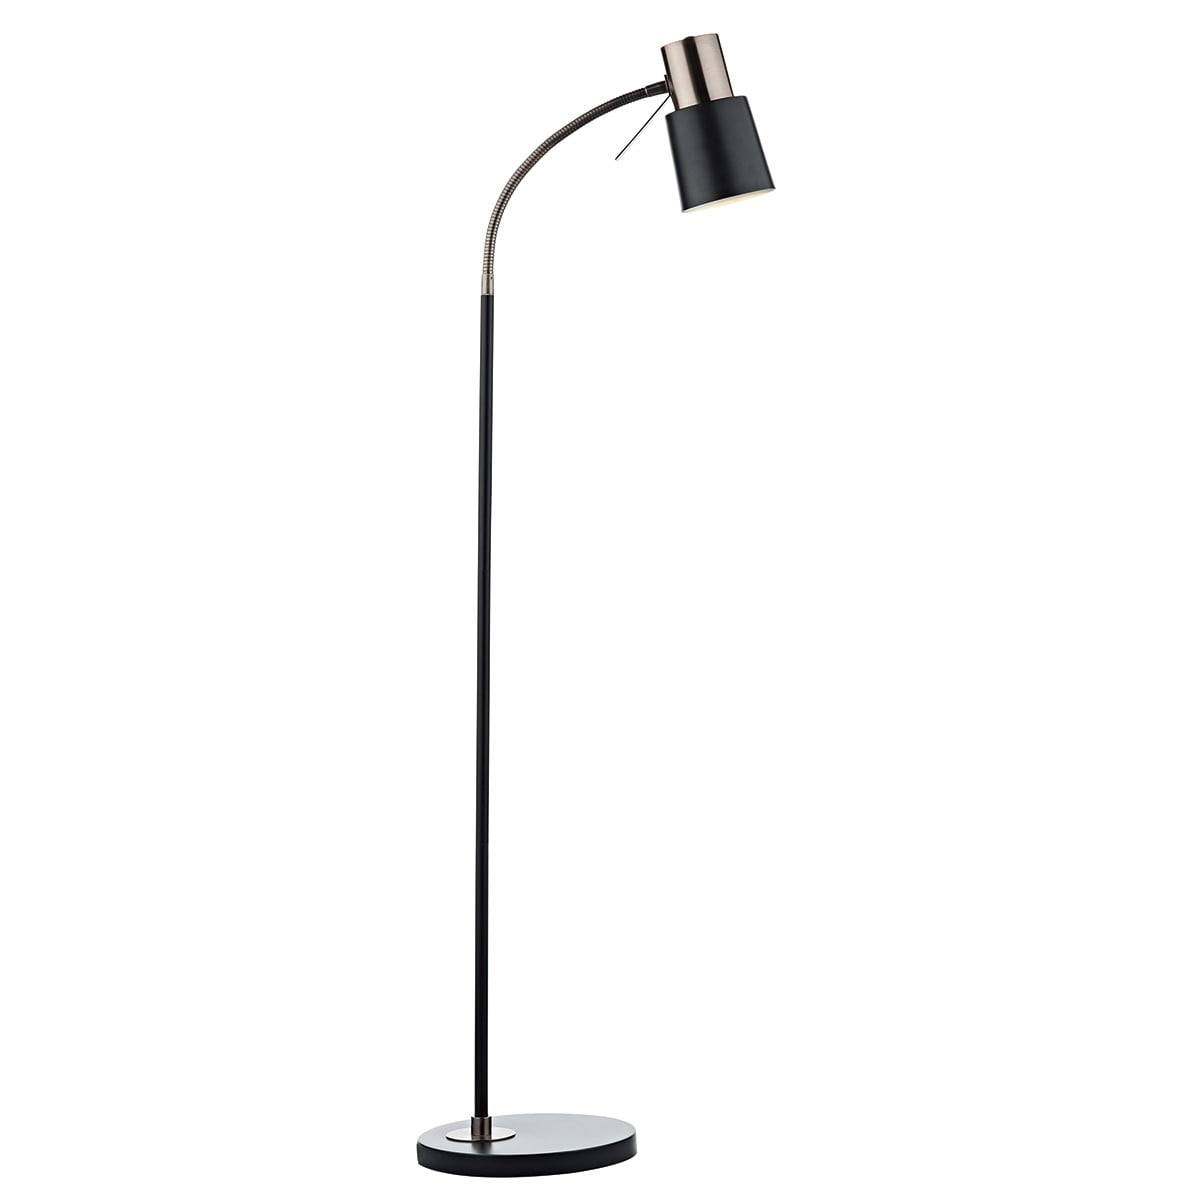 Stehlampe Schwarz Kupfer Bond Floor Lamp Black Copper - Witney Lighting